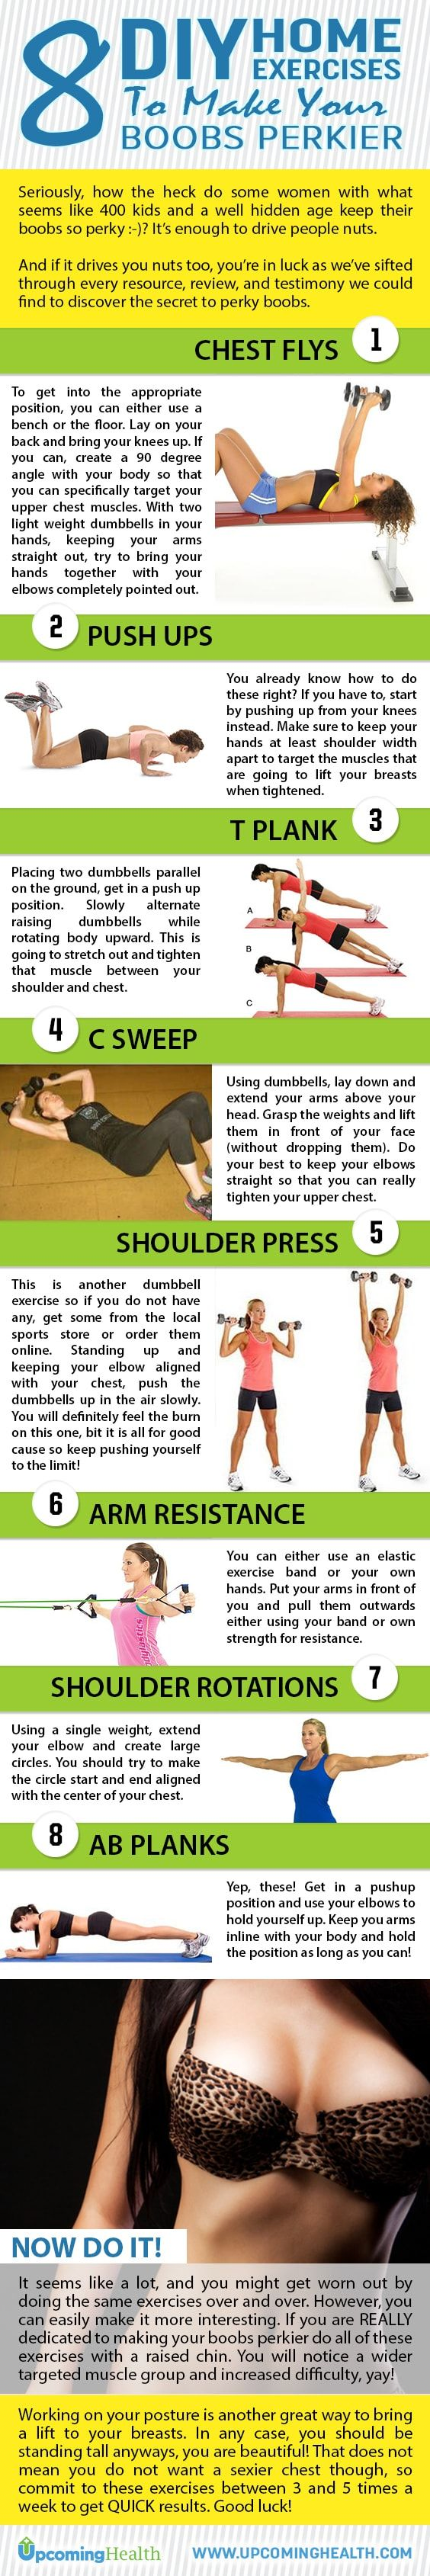 Best exercises for perky boobs that can be performed with dumbbells, resistance bands and bodyweight only!